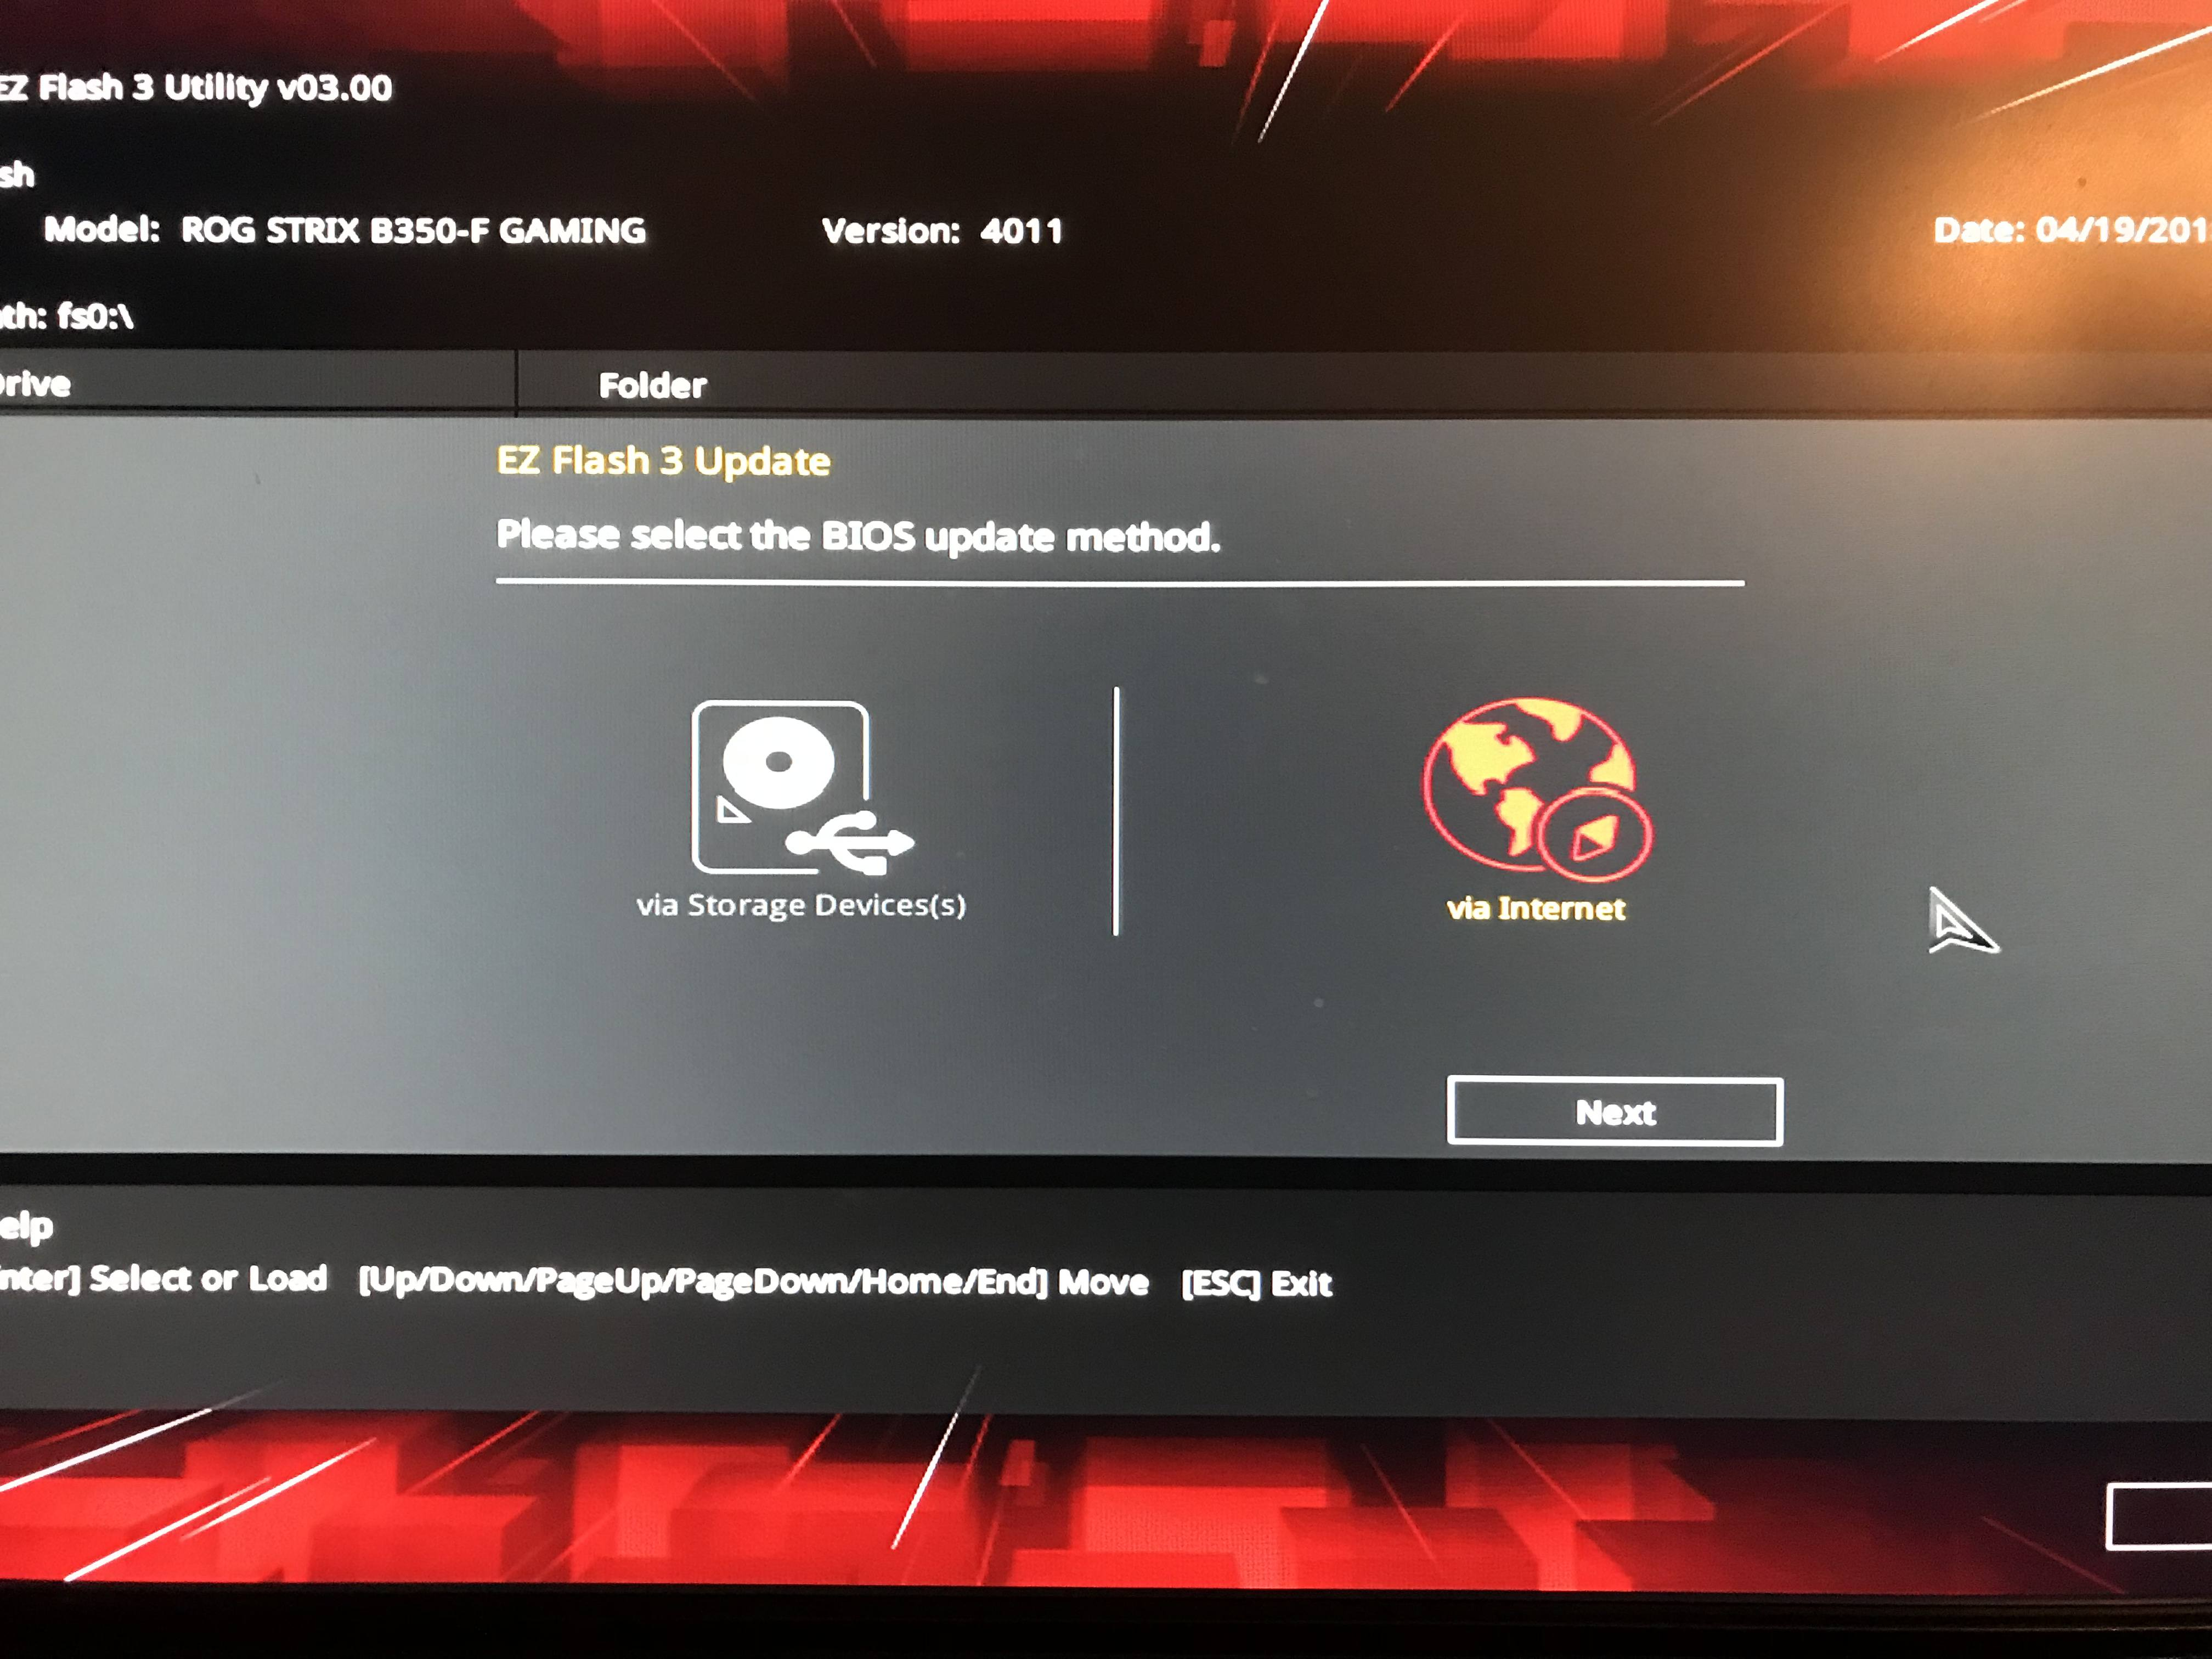 Asus EZ Flash 3 Utility Bios Update Problems with ROG STRIX